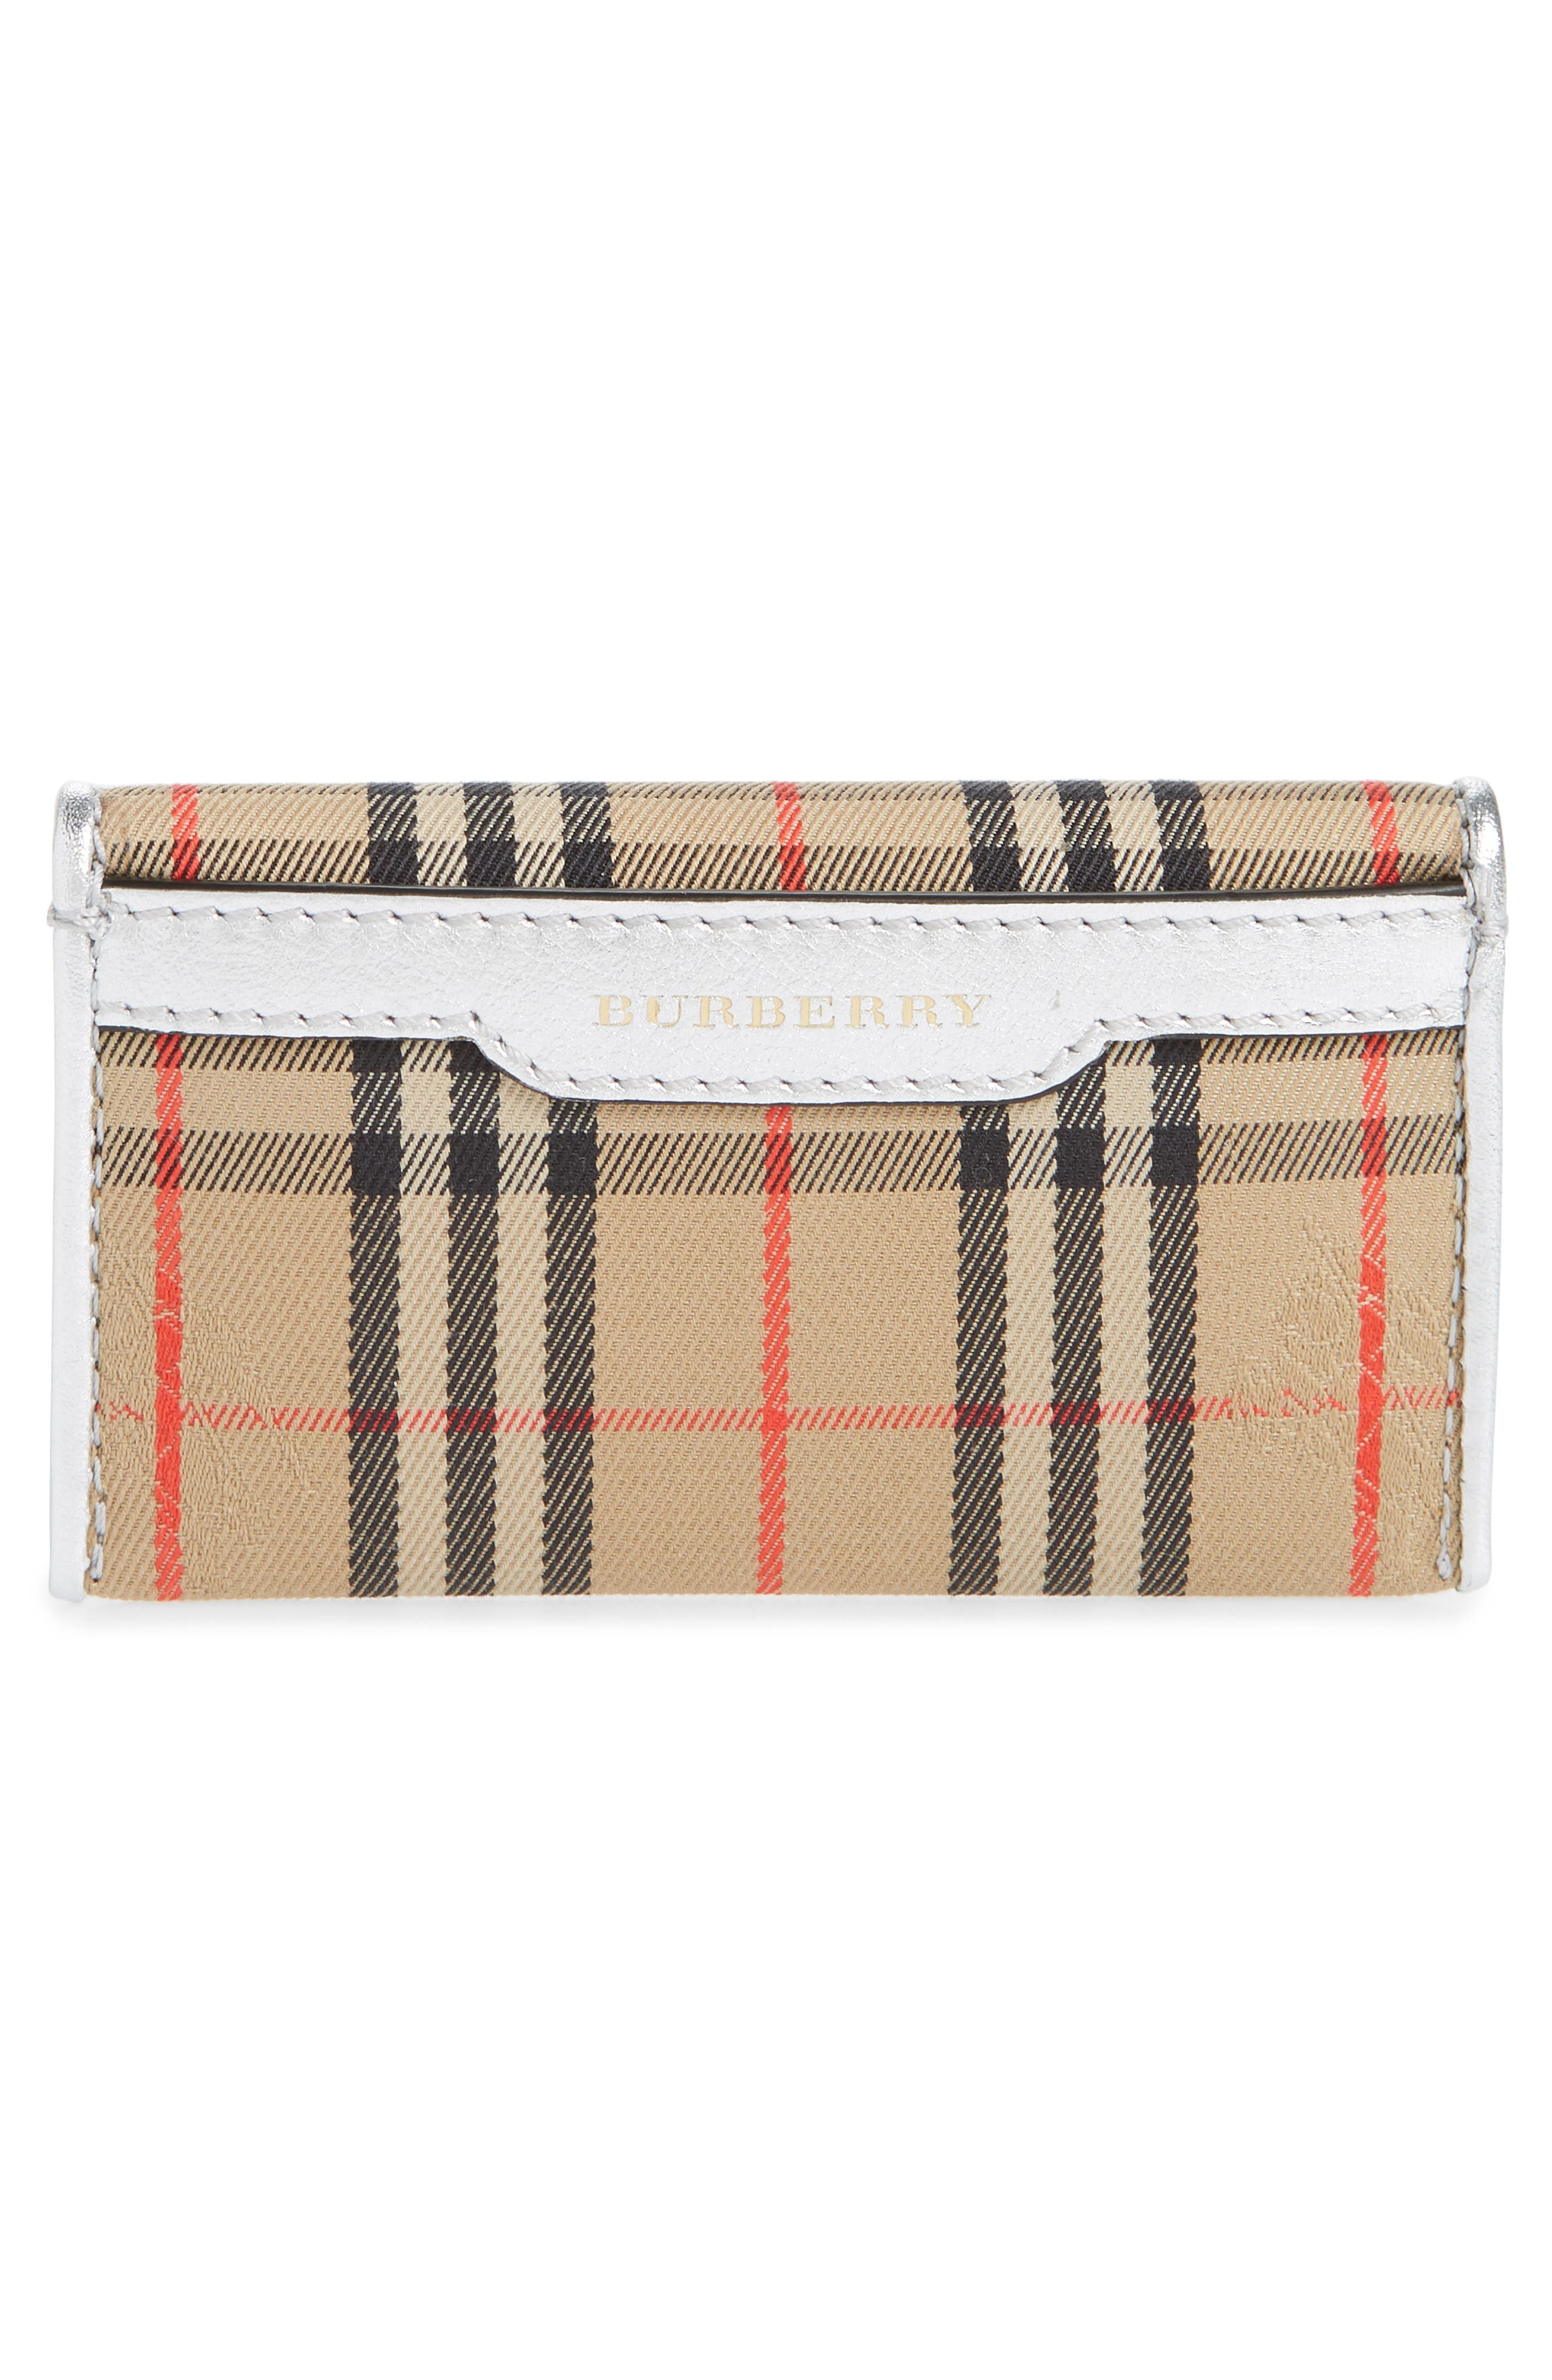 5722bab5a9c Women's Burberry | Nordstrom